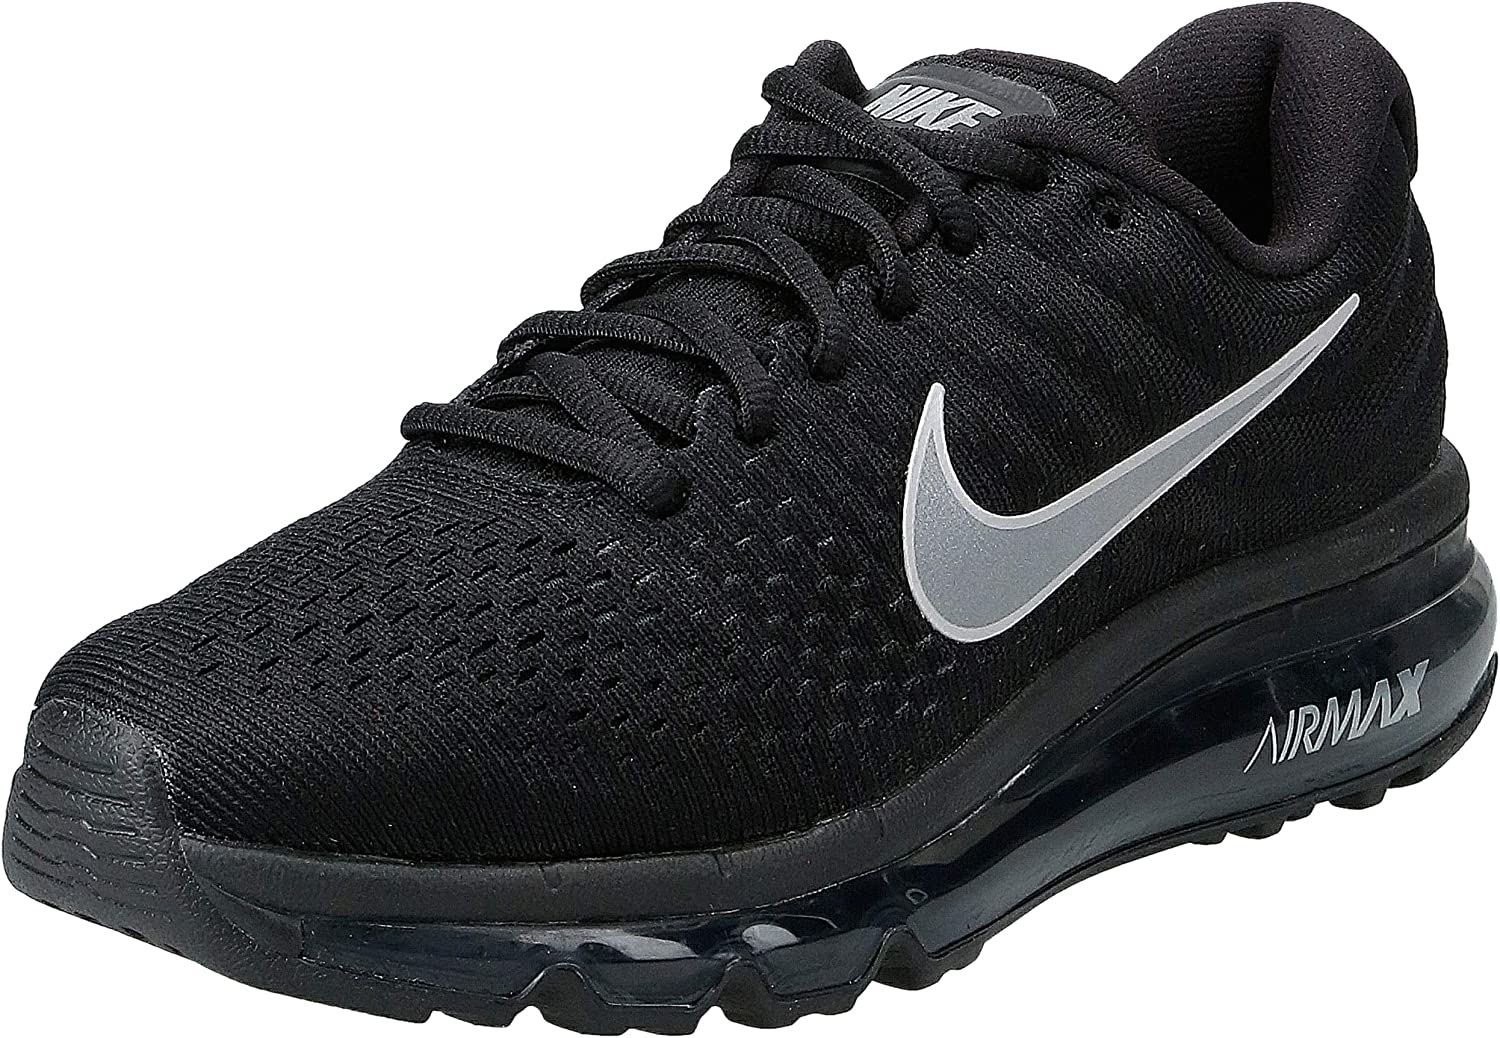 Nike WMNS Air Max 2017 Women's Casual Shoes 849560 001